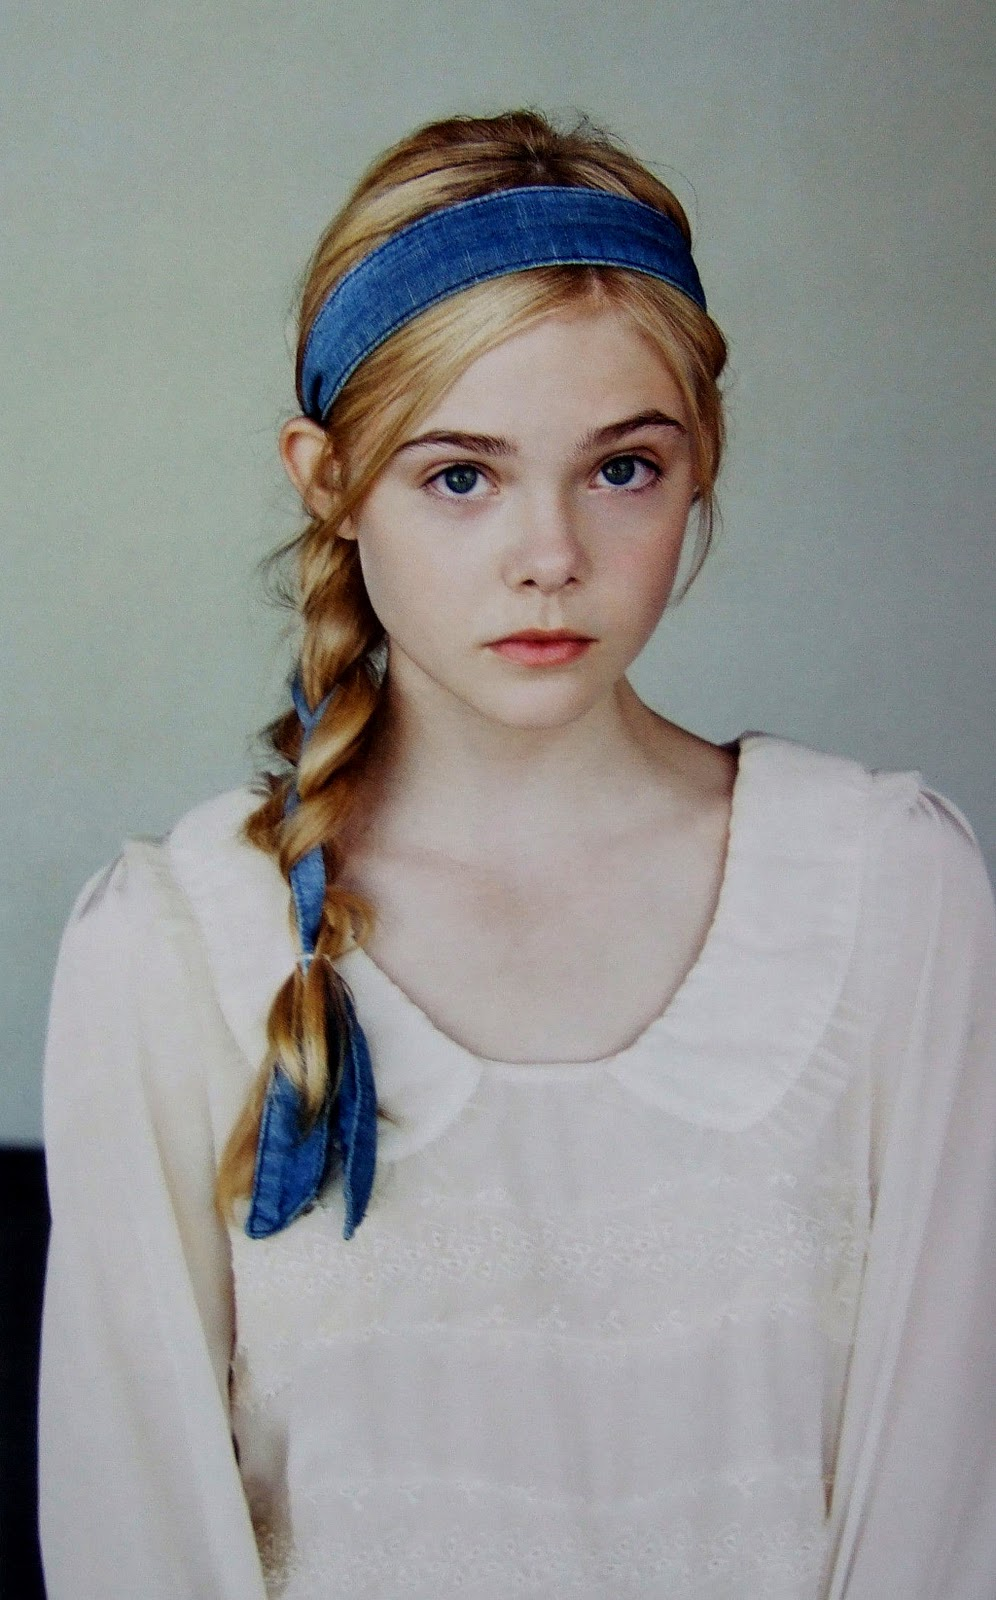 Elle Fanning Covers Fashion Magazine Says She Loves Being: Whitecrow: The New 'It Girl' : Elle Fanning